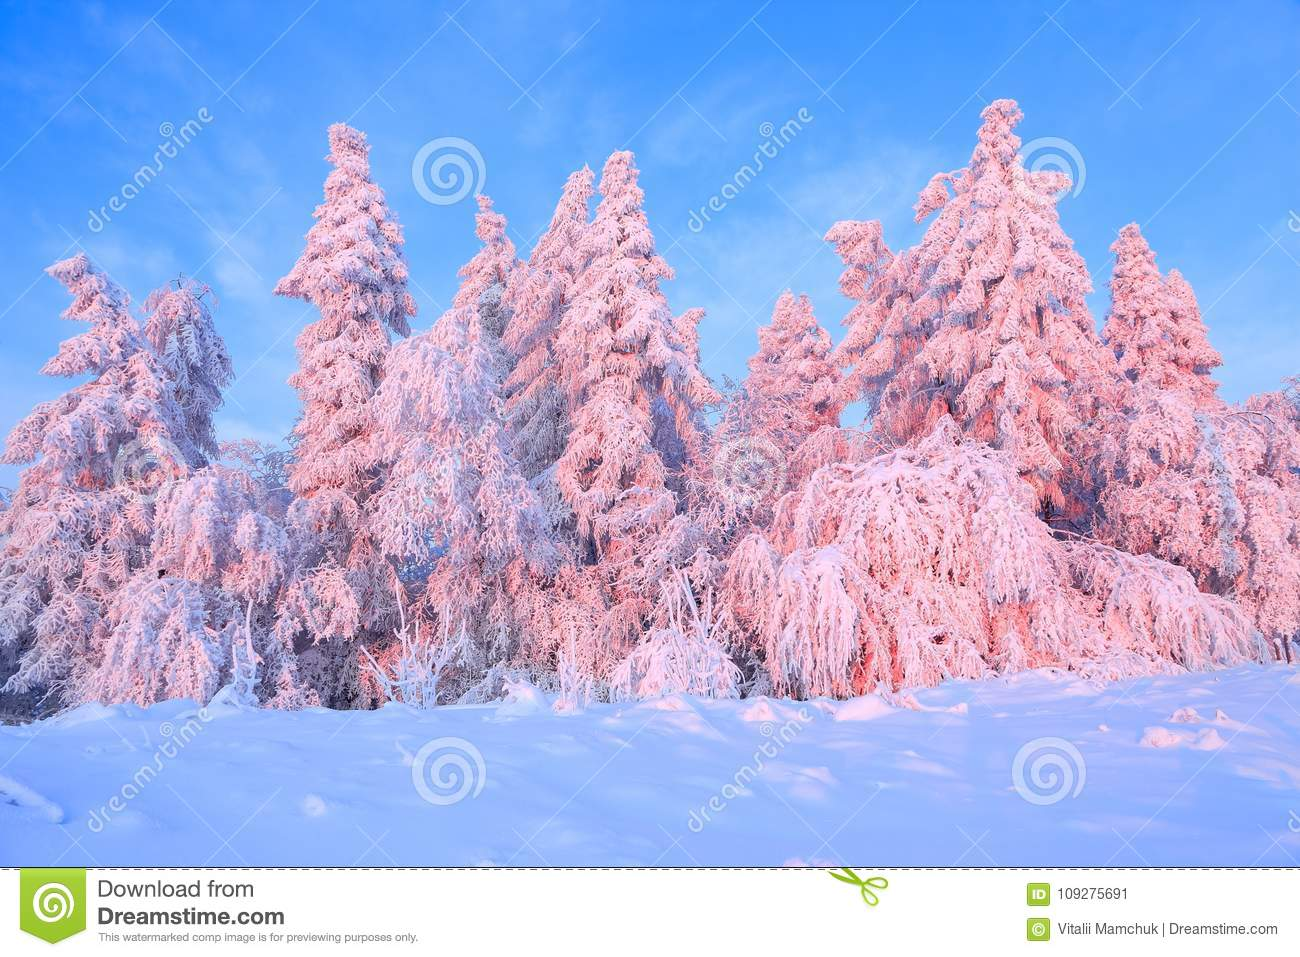 Nice twisted trees covered with thick snow layer enlighten rose colored sunset in beautiful winter day.